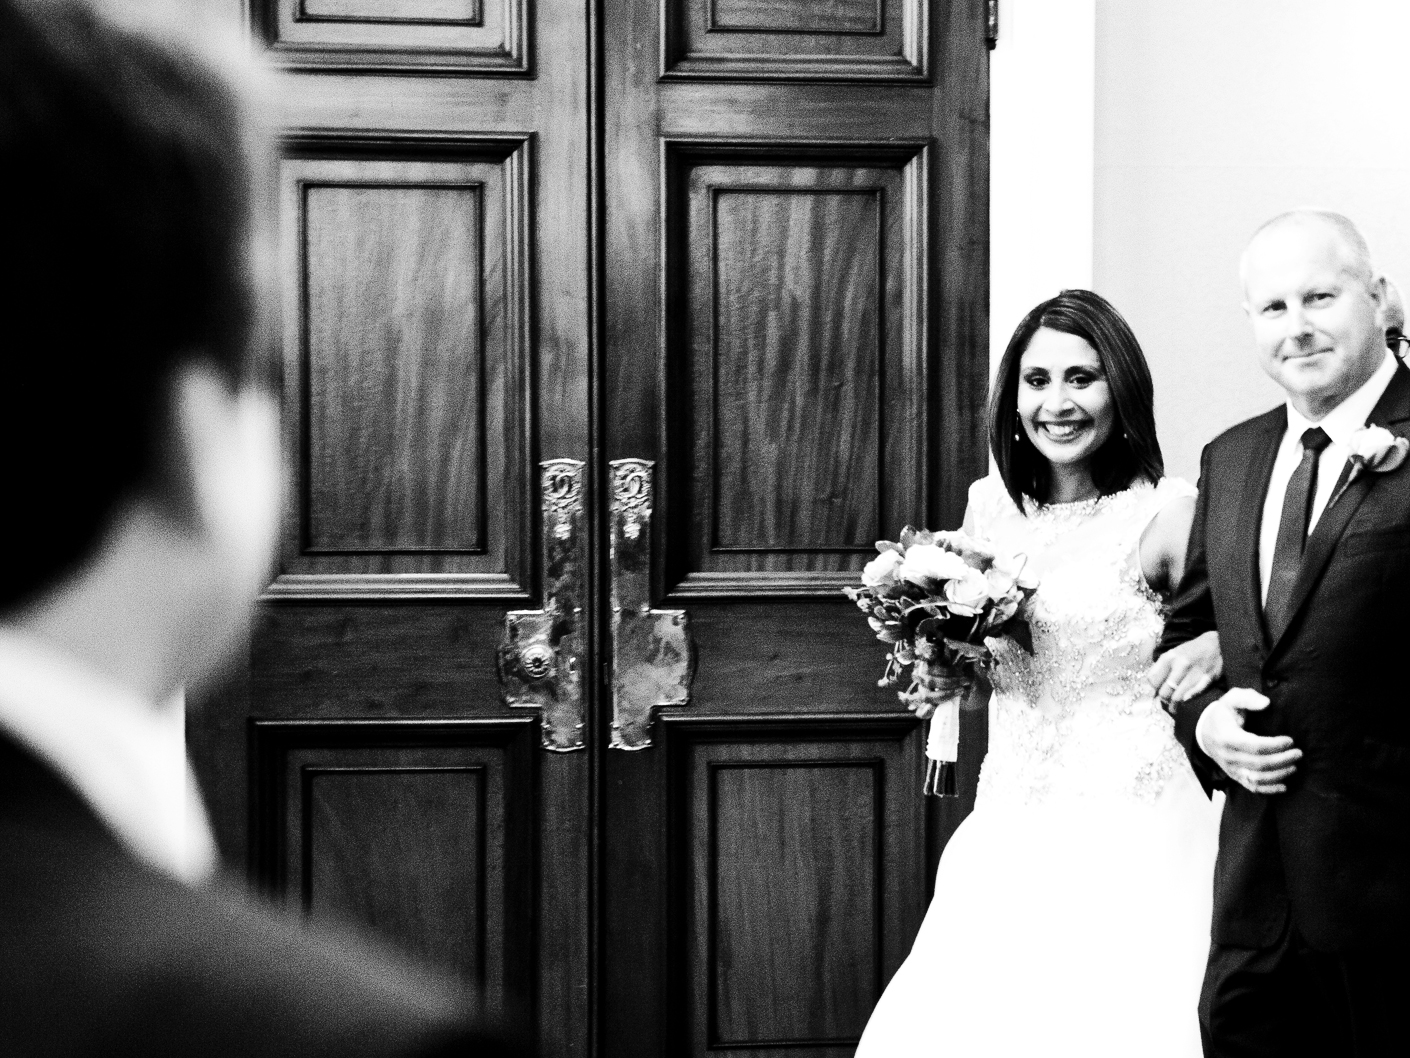 photography-of-the-bride-arriving-at-the-wedding-ceremony-at-crewe-town-hall-in-cheshire